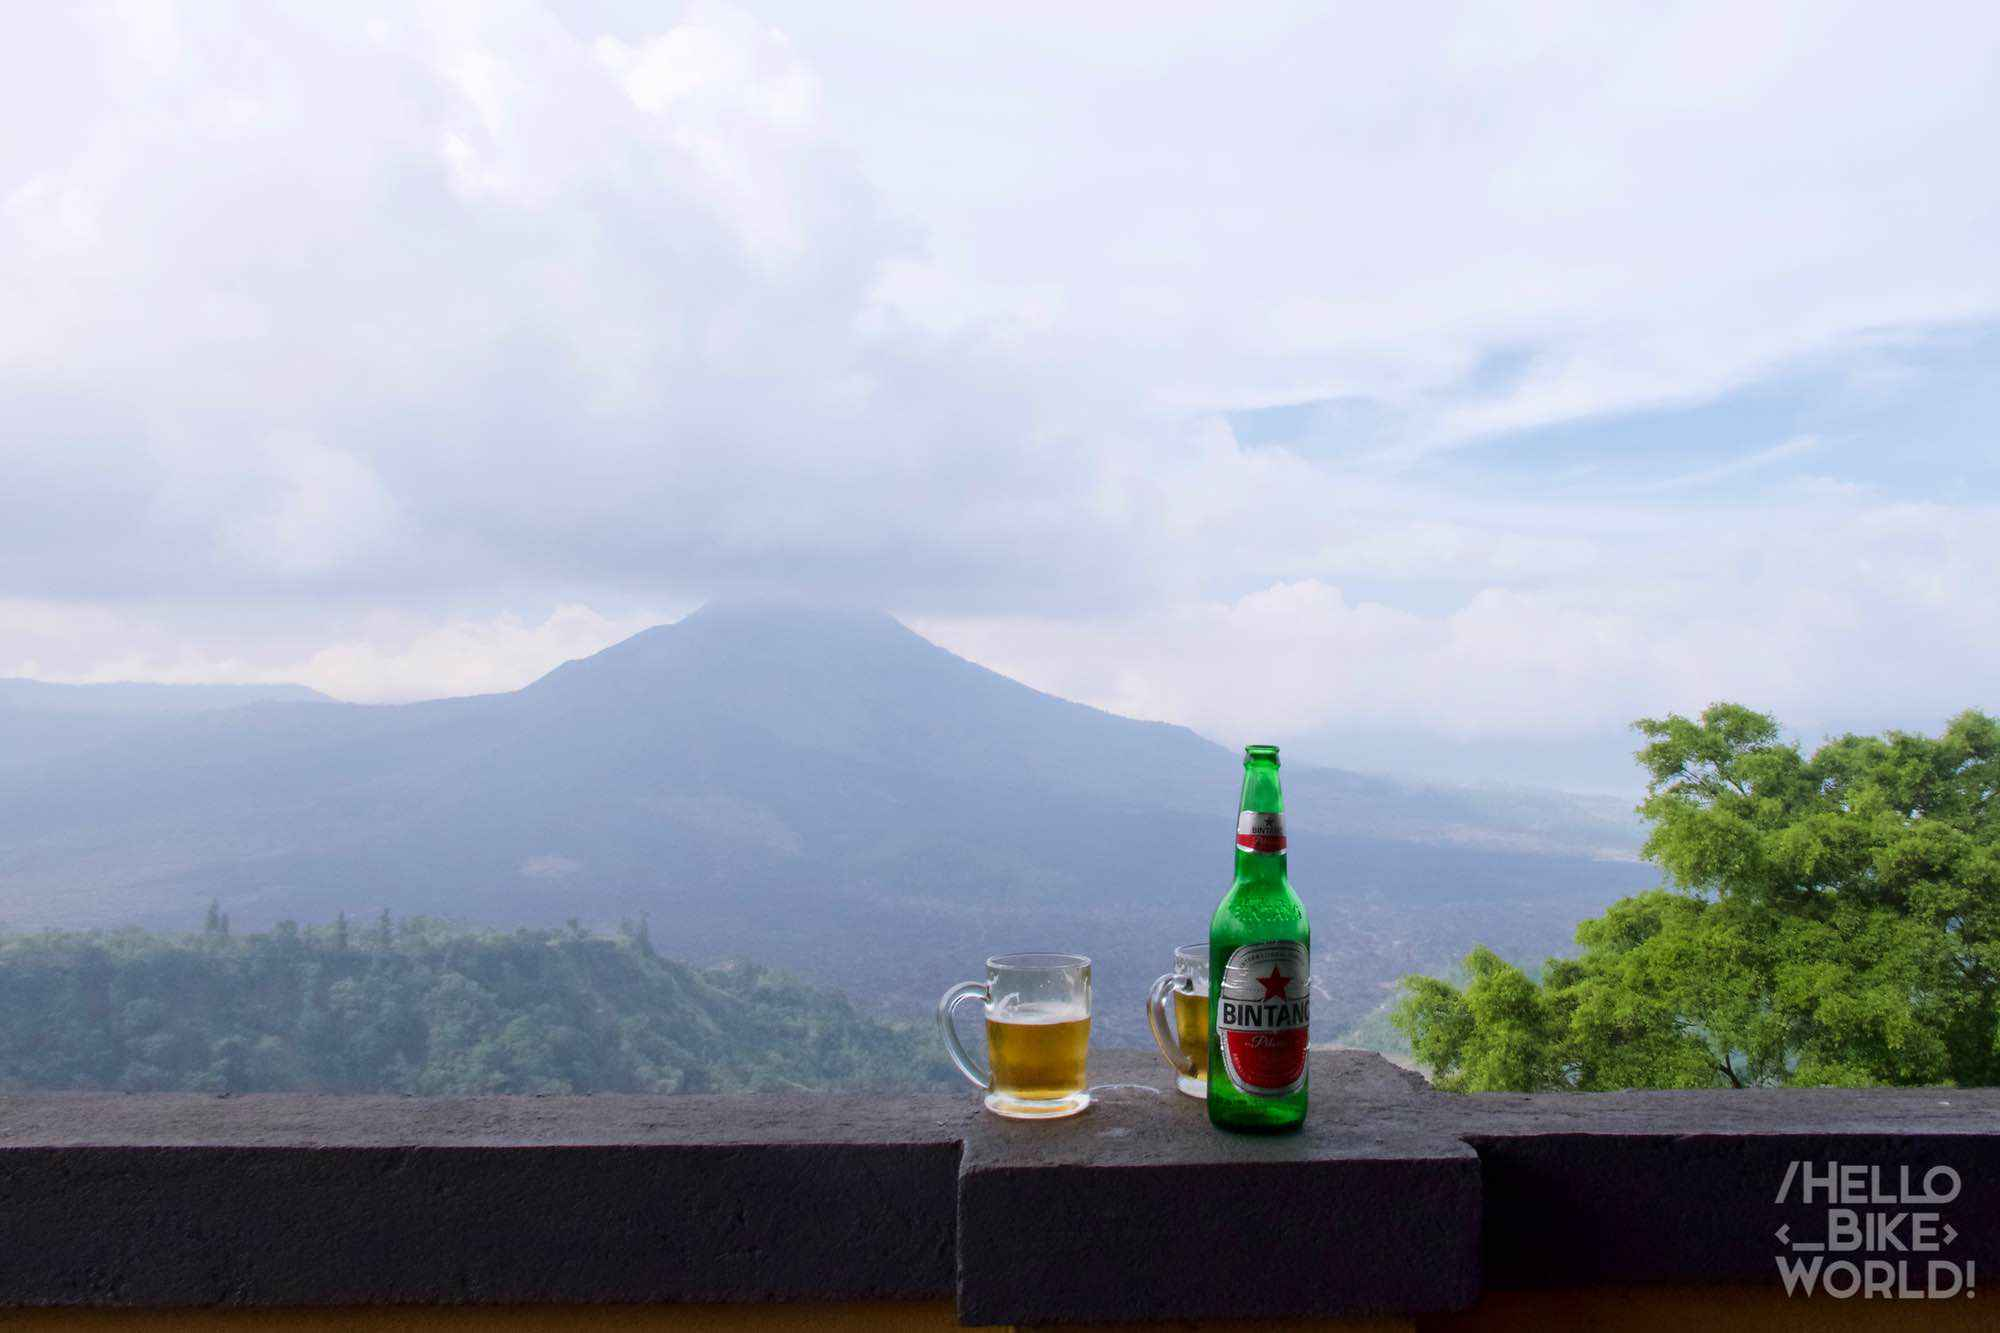 View of Mt Batur and the Bintang